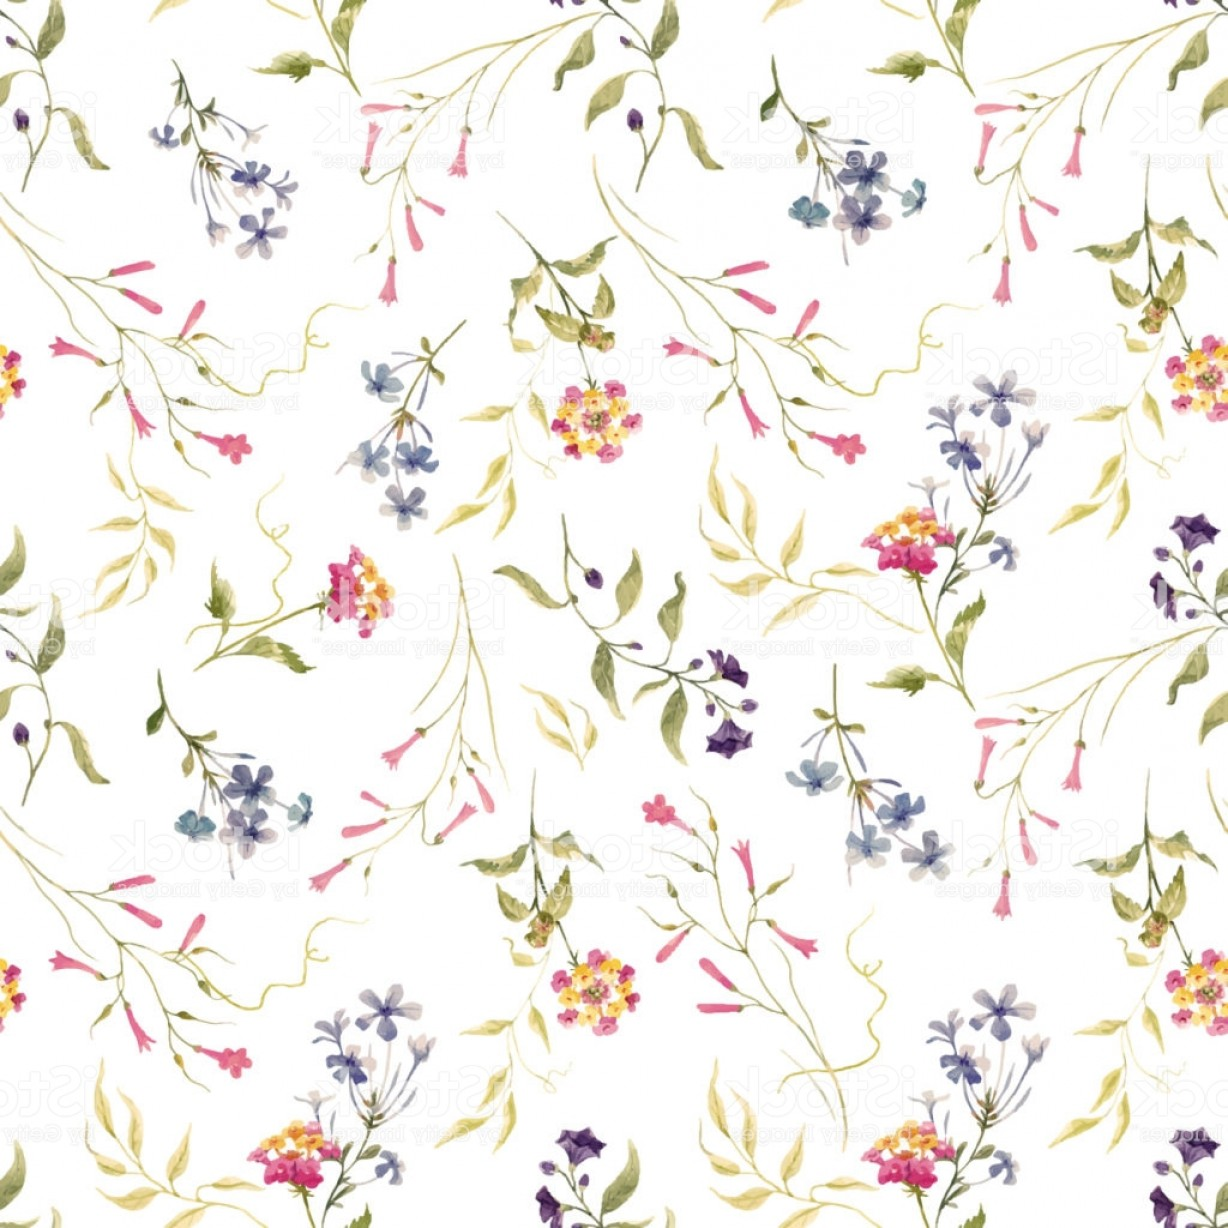 Floral Vector Illustration: Watercolor Floral Vector Pattern Gm